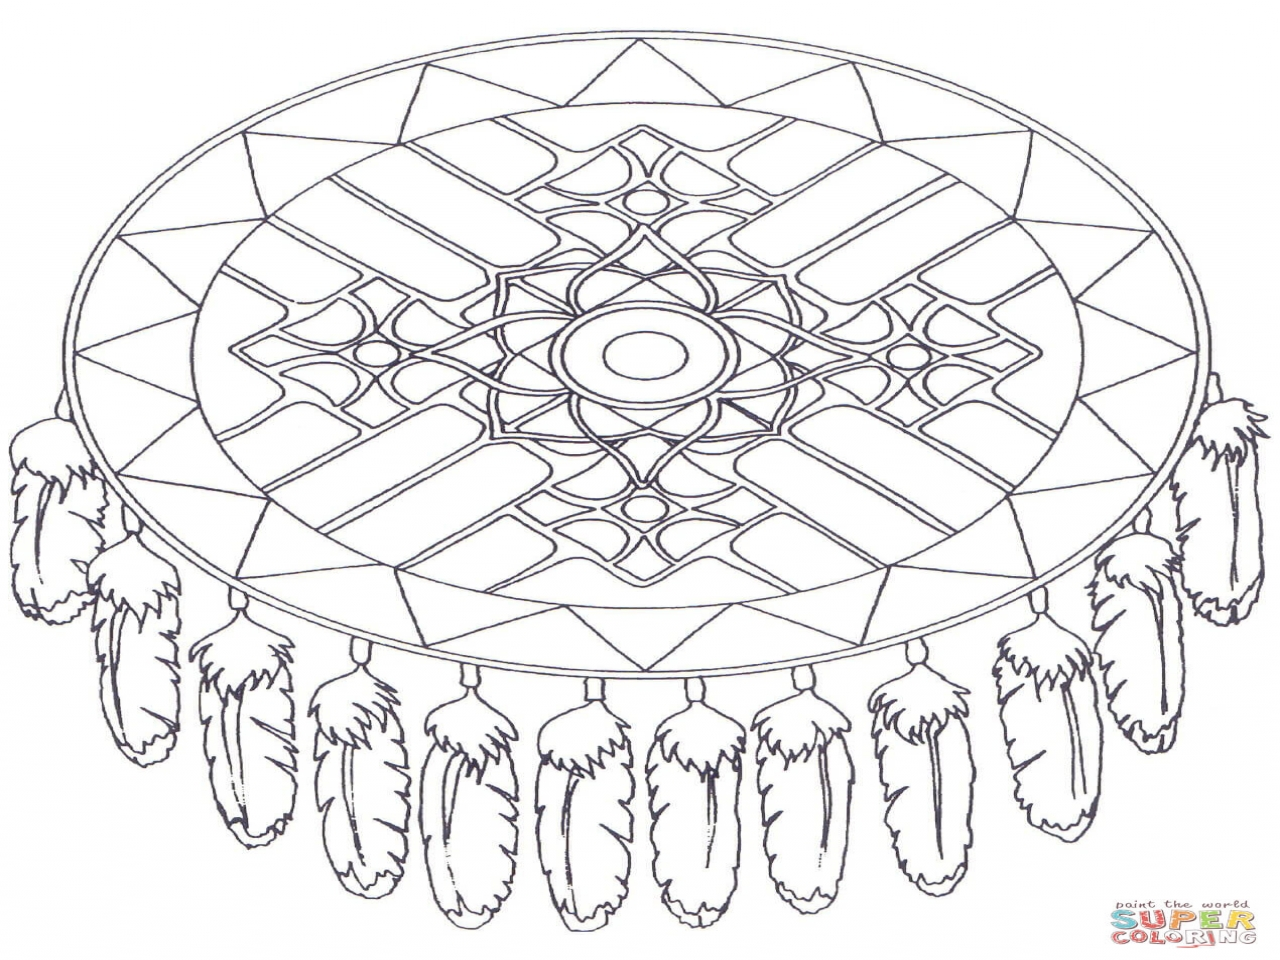 1280x960 Native American Coloring Pages Printable Dreamcatcher Mandala Page